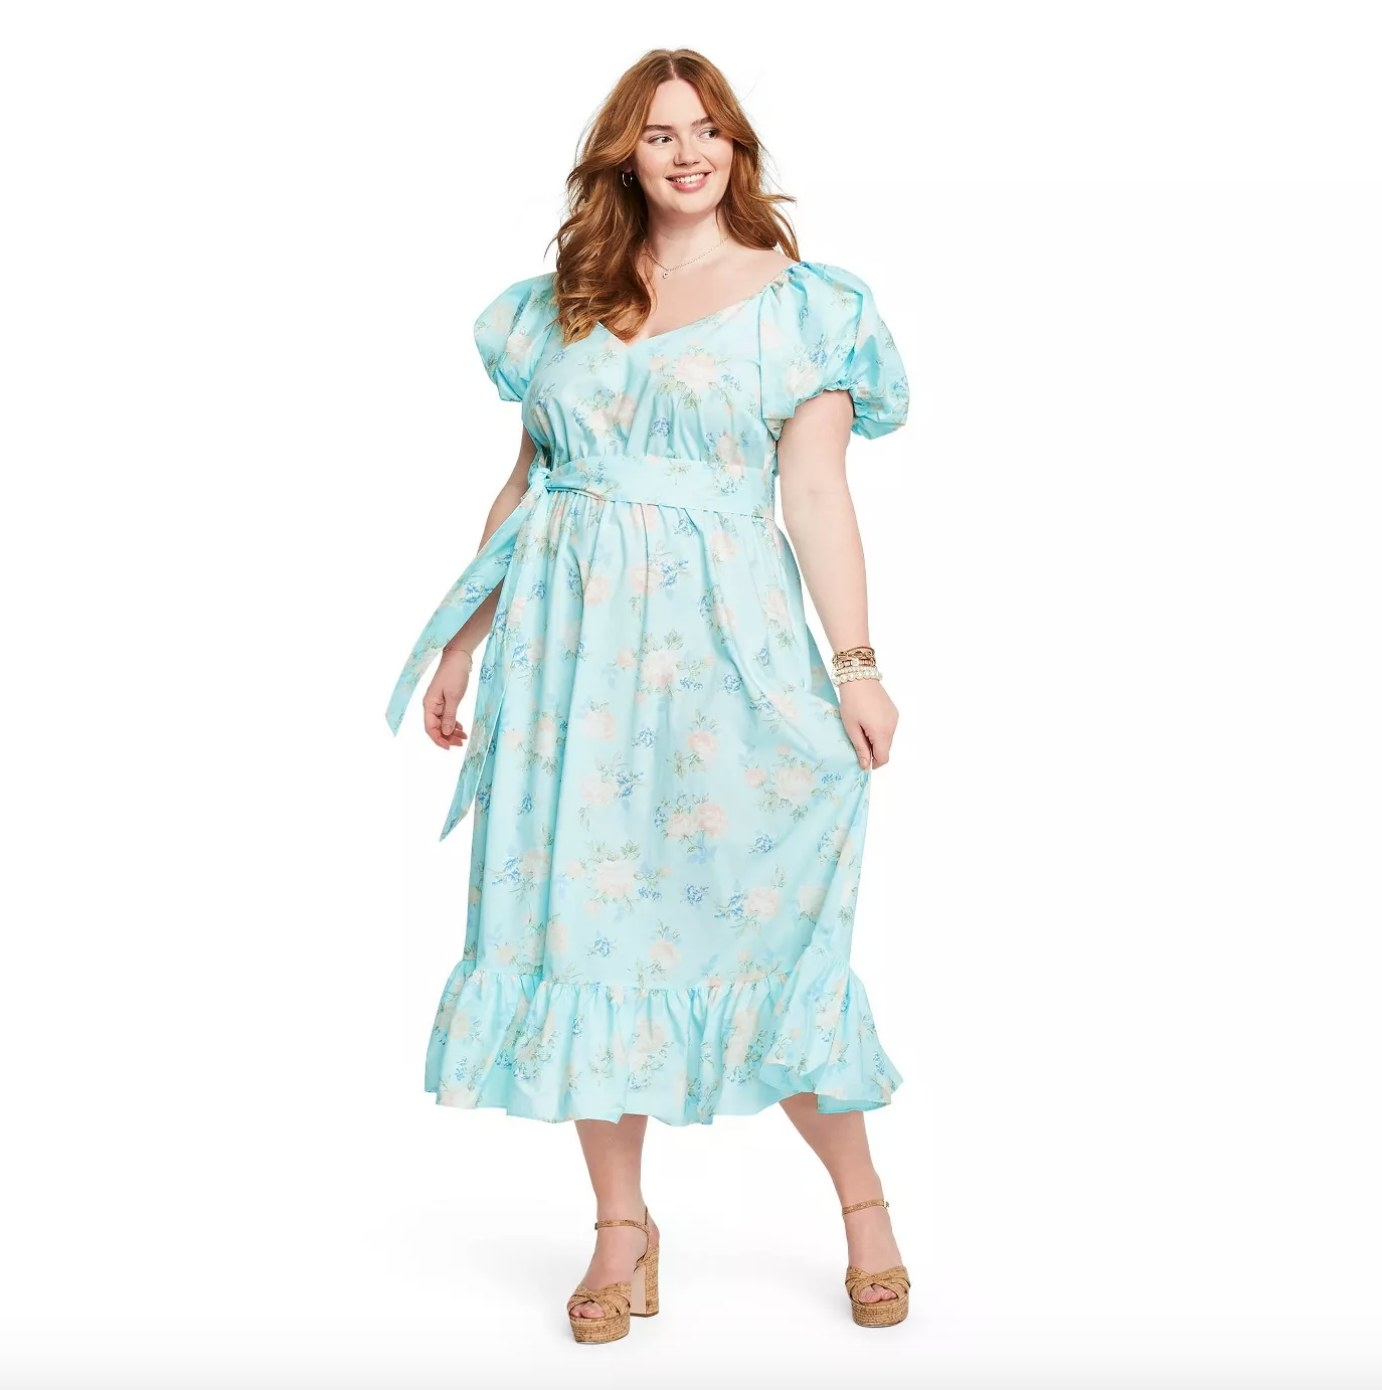 Model wearing the dress in light blue with light pink flowers on it and a ruffle hem